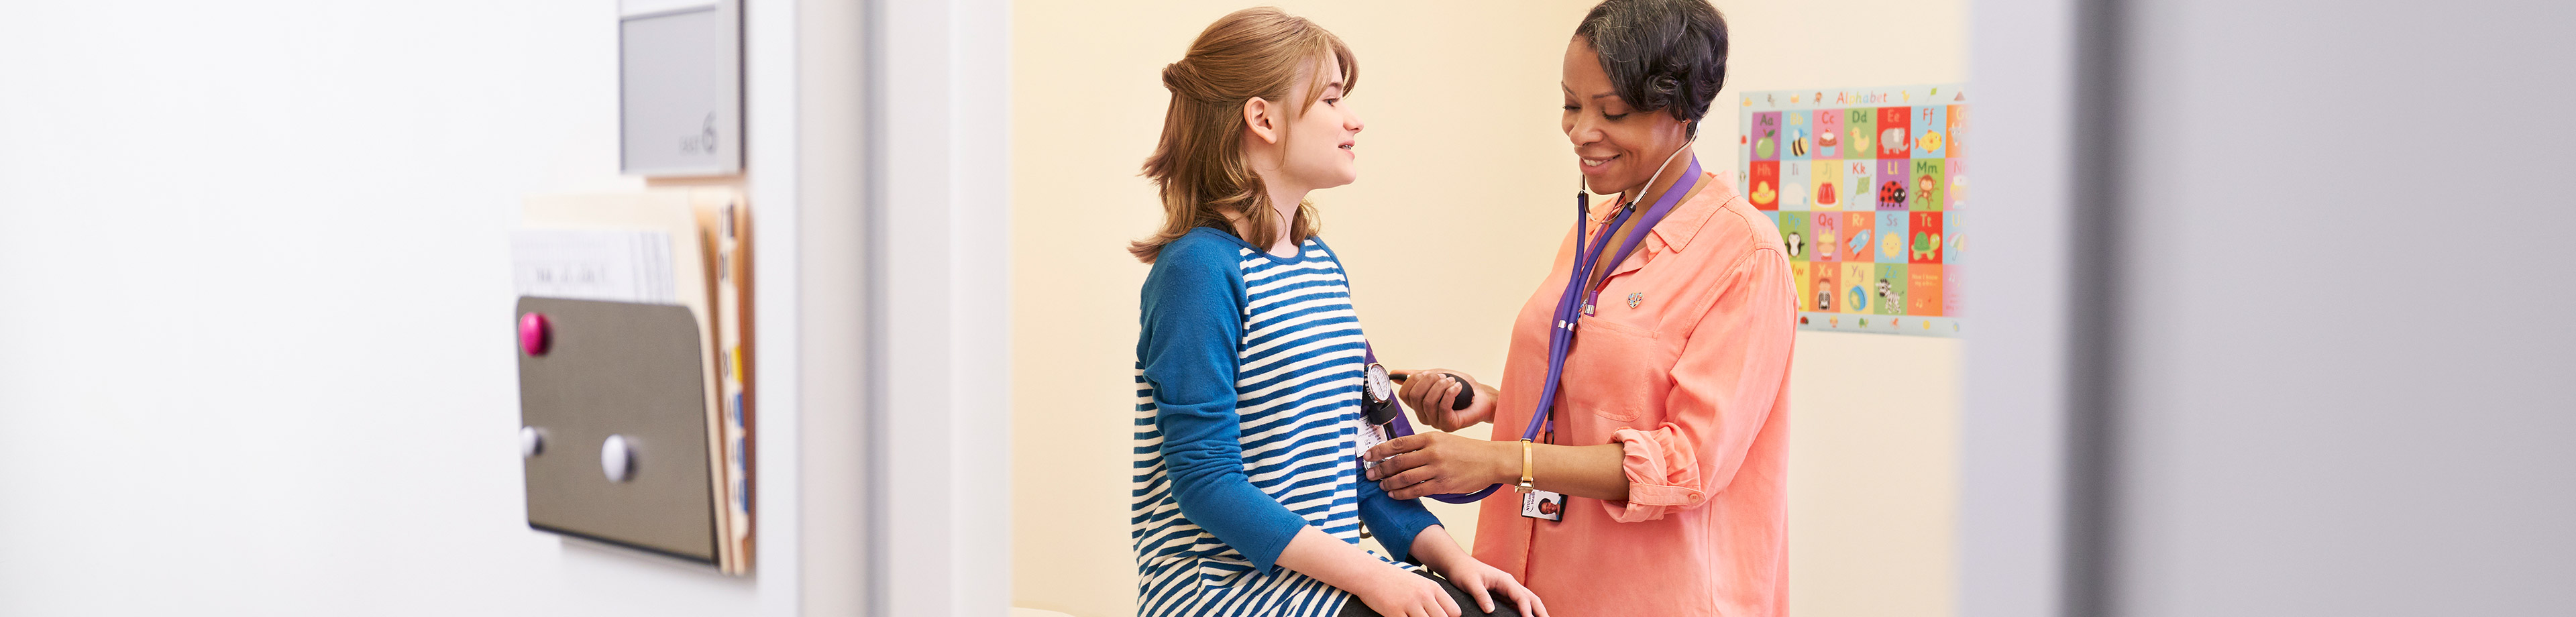 Doctor Checks Pediatric Patients Blood Pressure